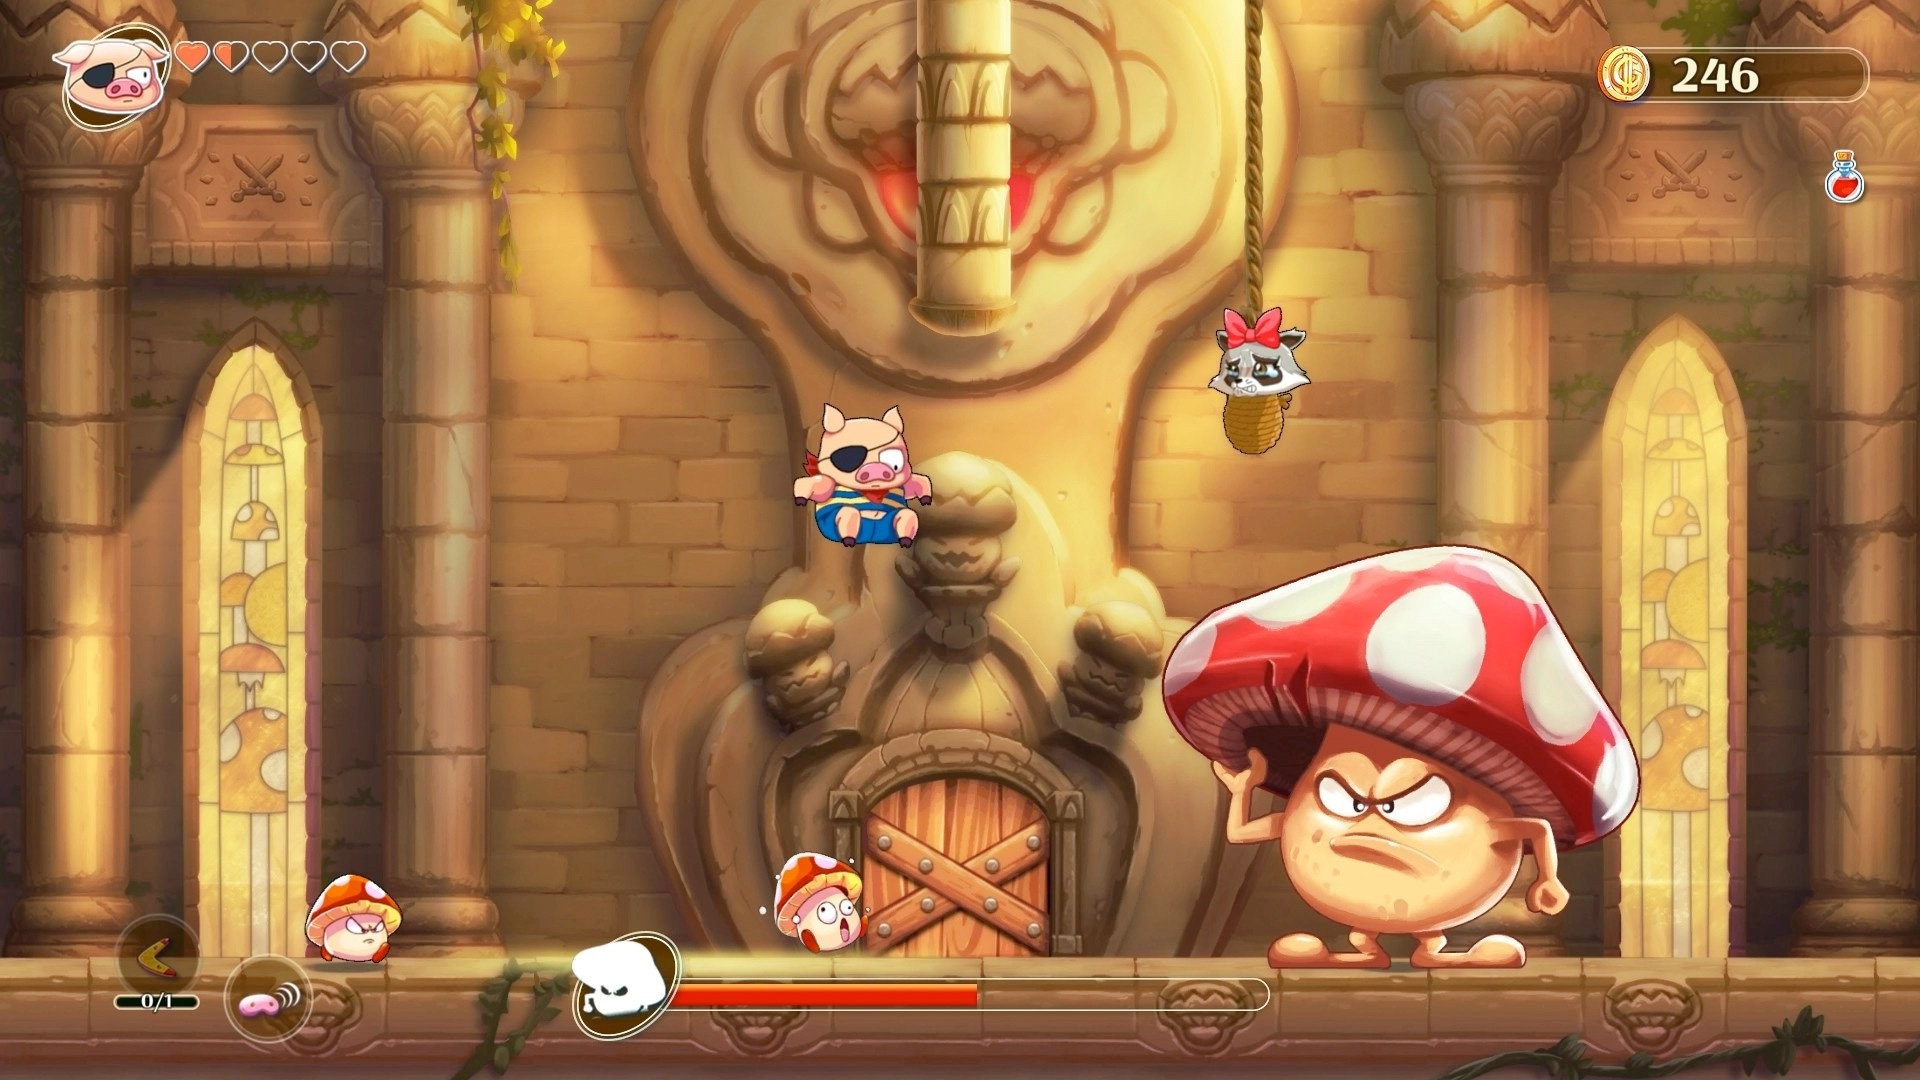 Monster Boy and the Cursed Kingdom is getting a free 4K, 120FPS next-gen update screenshot